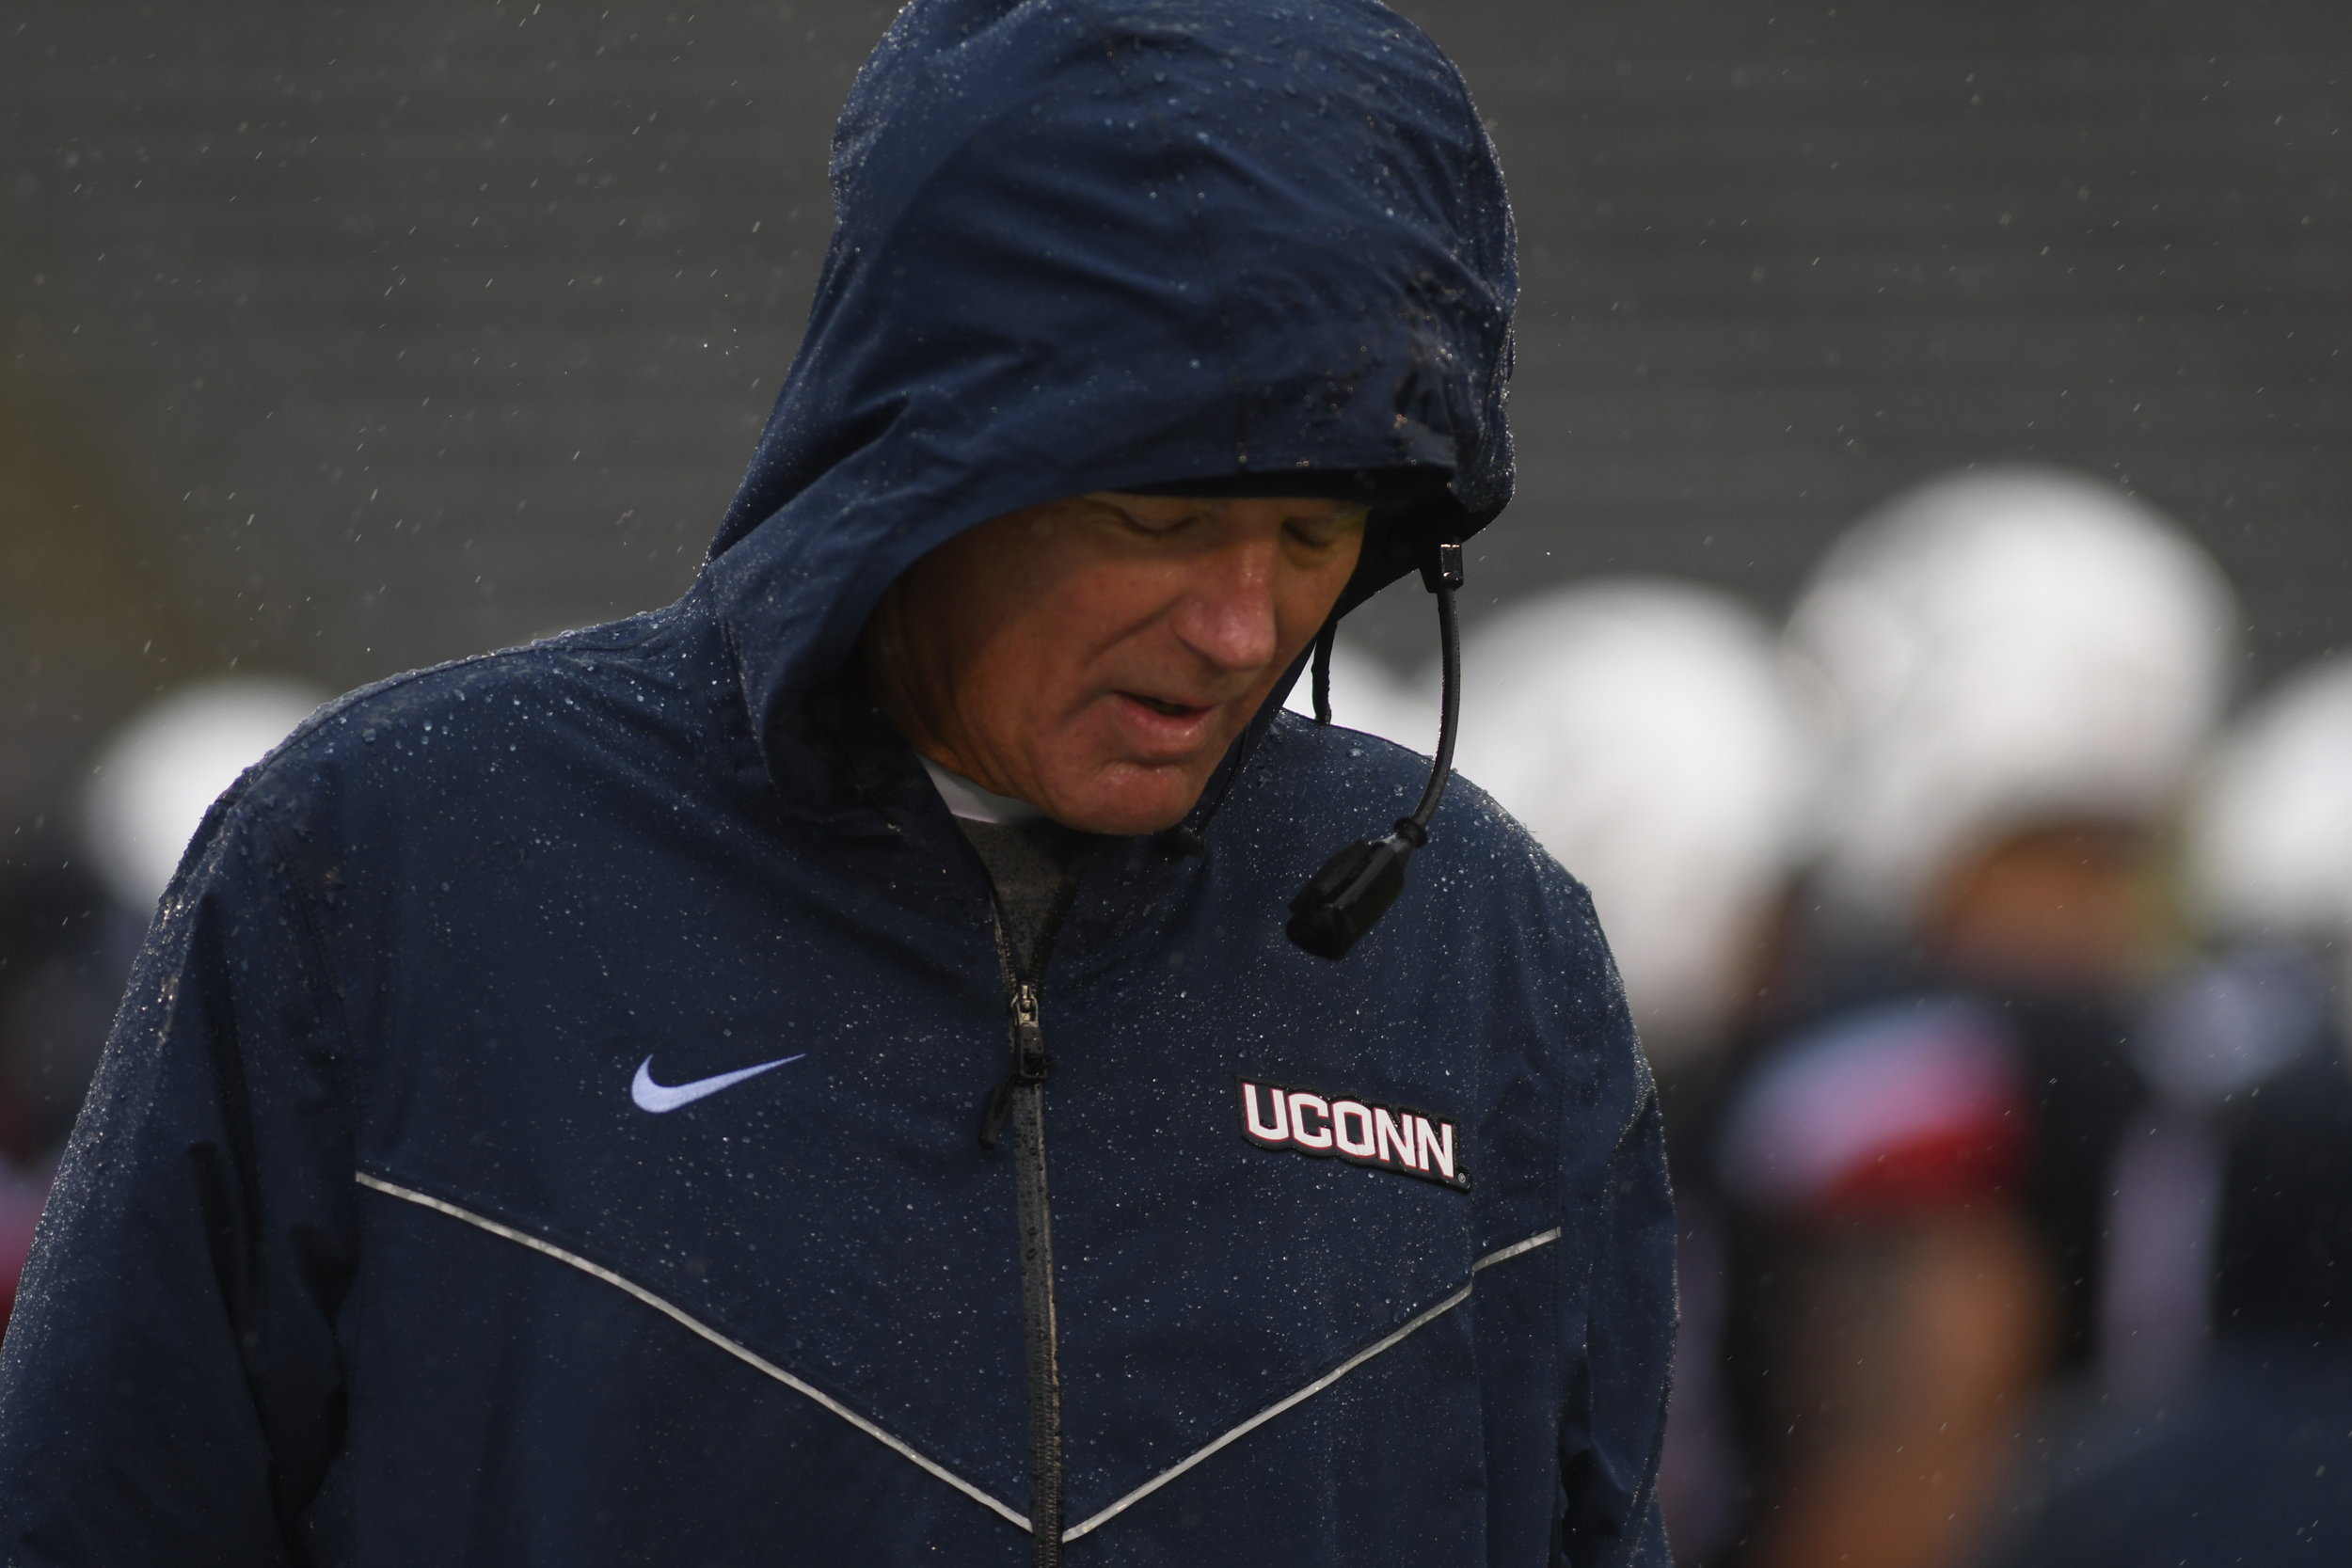 UConn finished their second season of head coach Randy Edsall's second stint at UConn with a 1-11 record. (Charlotte Lao/ The Daily Campus)